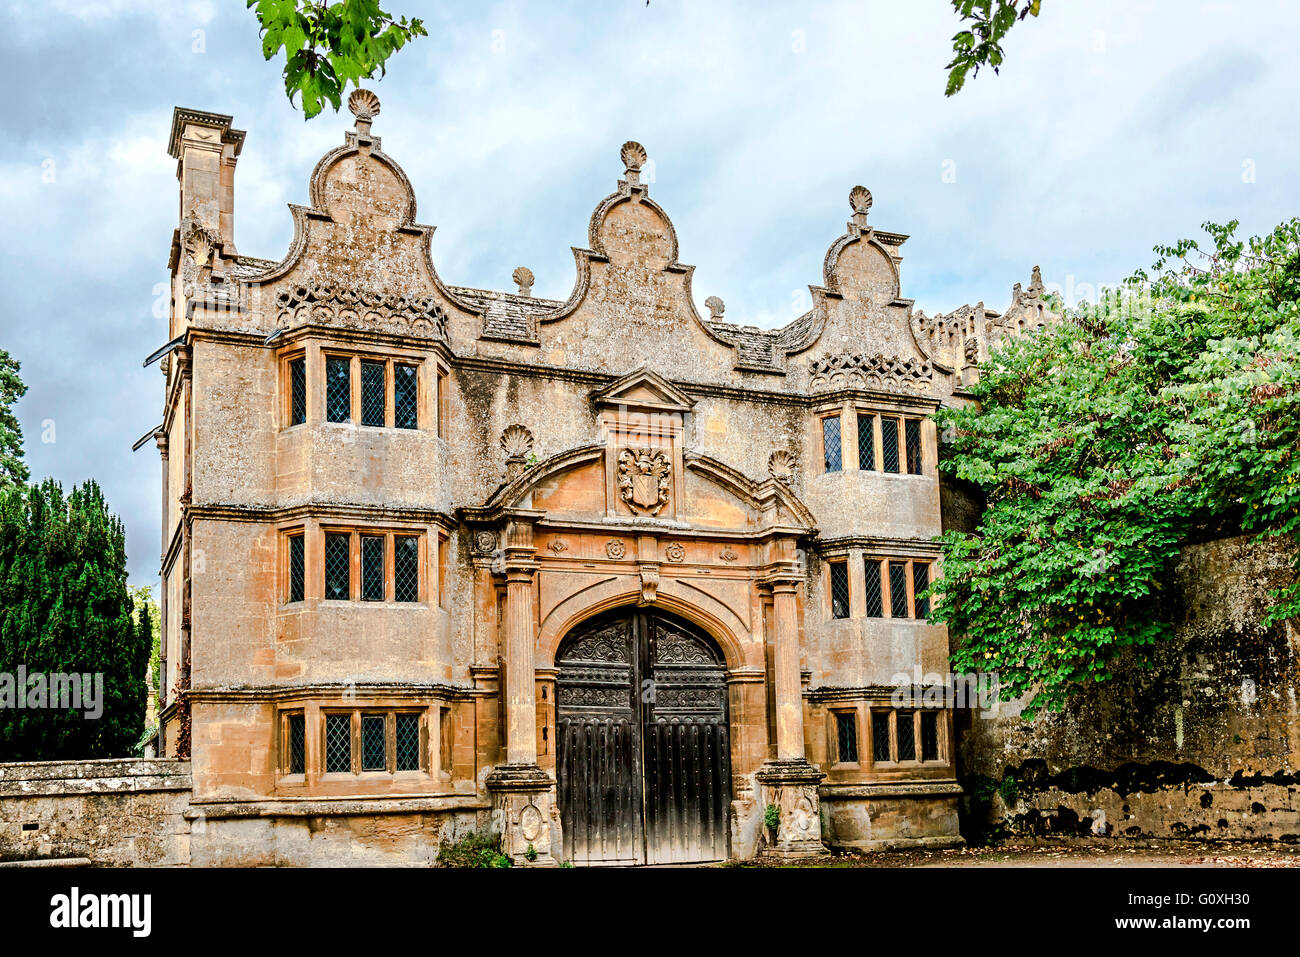 Stanway house, garden and church in Gloucestershire, England, UK Stock Photo